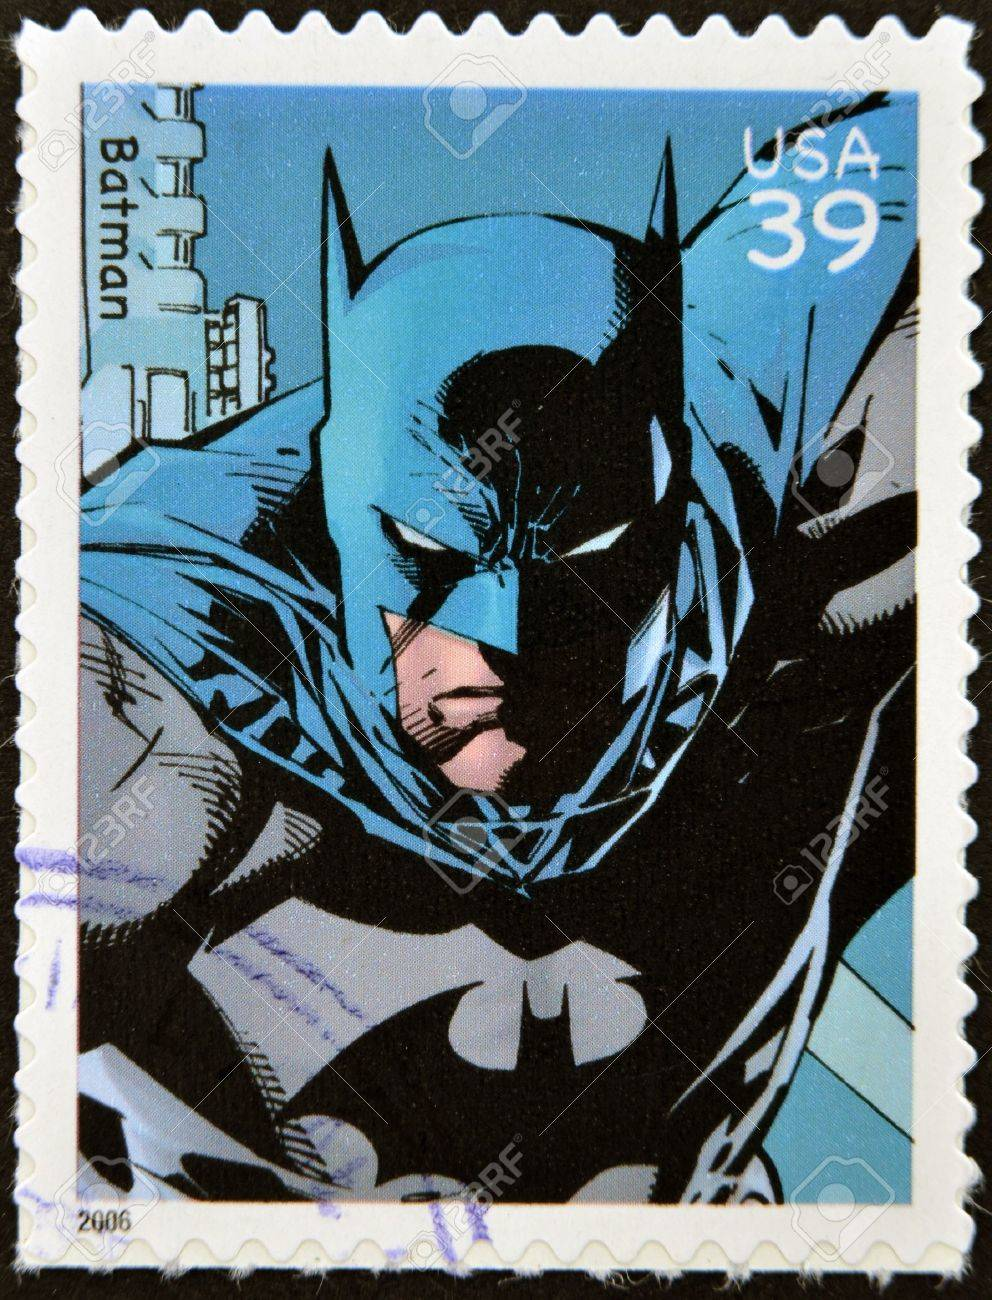 UNITED STATES OF AMERICA - CIRCA 2006: stamp printed in USA shows Batman, circa 2006  Stock Photo - 13289461